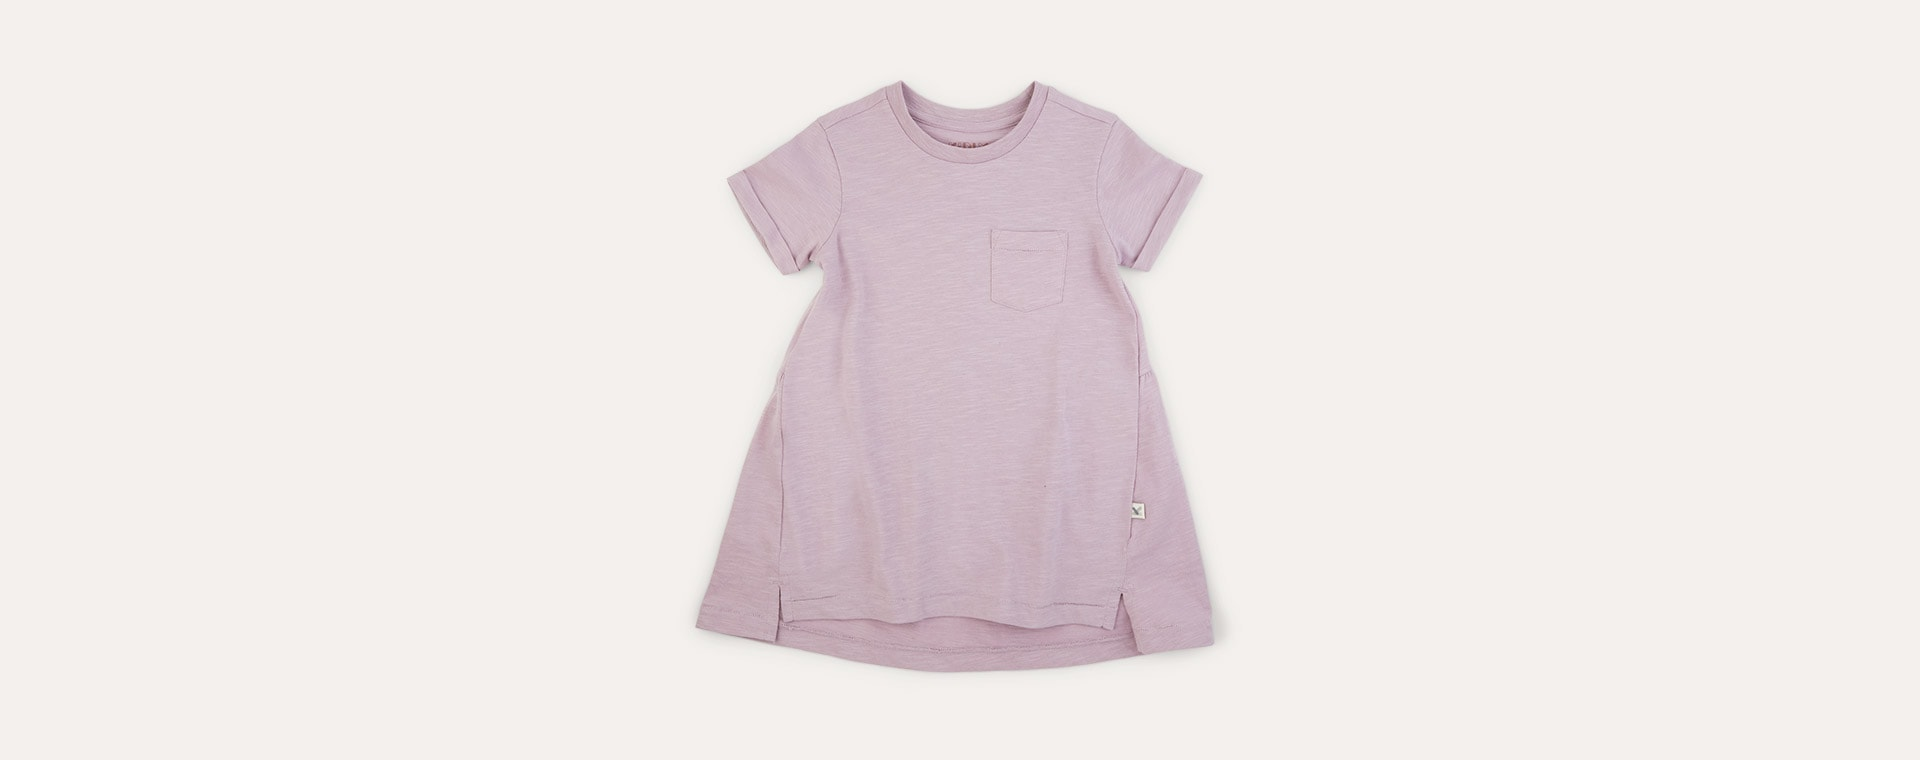 Heather KIDLY Label Perfect Tee Dress